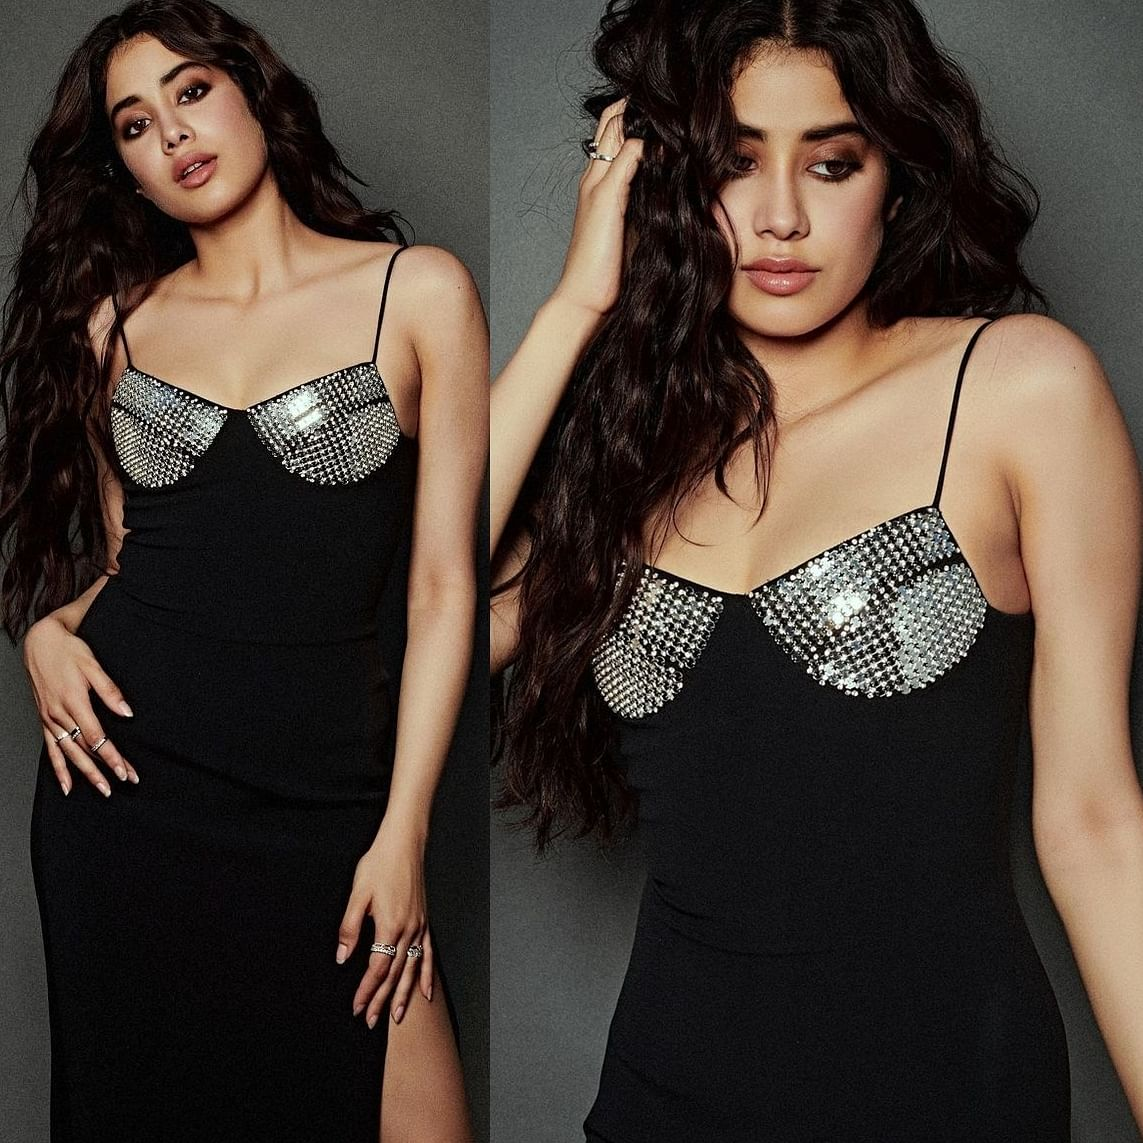 In Pics: Janhvi Kapoor exudes glamour in black thigh-high slit dress worth Rs 1.2 lakh